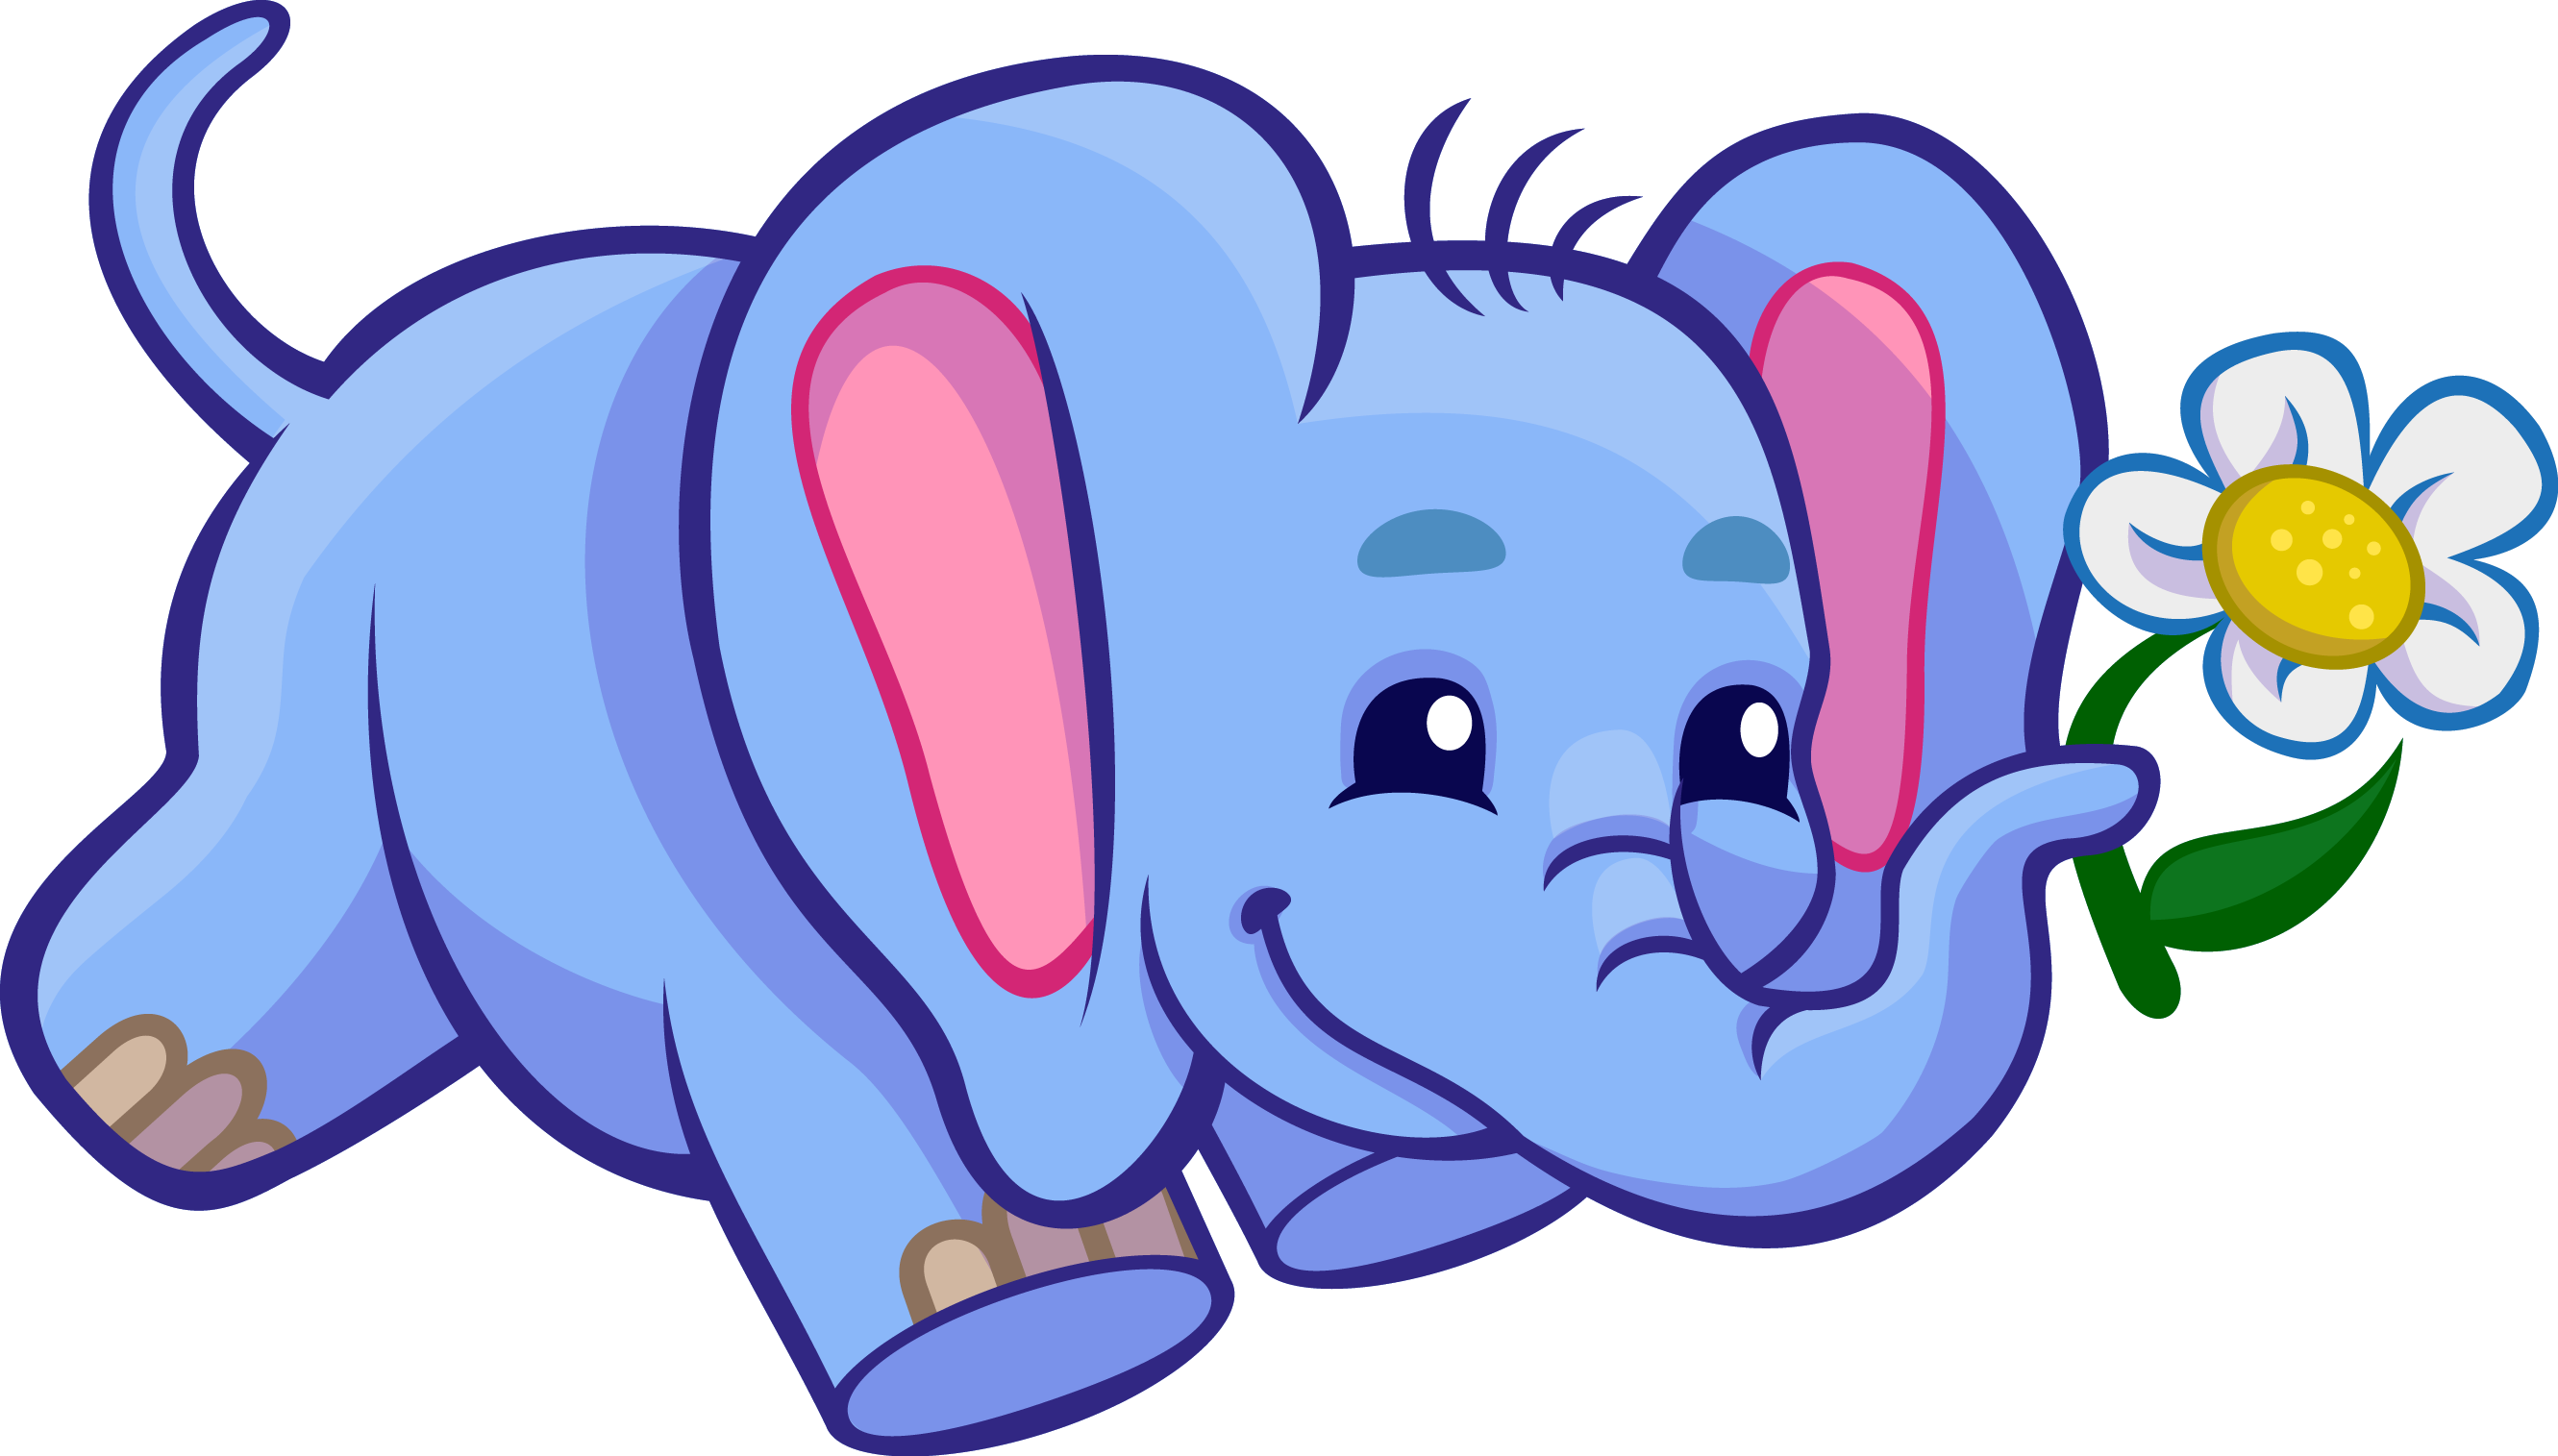 Free to use public. Elephant clip art elephent clipart library stock